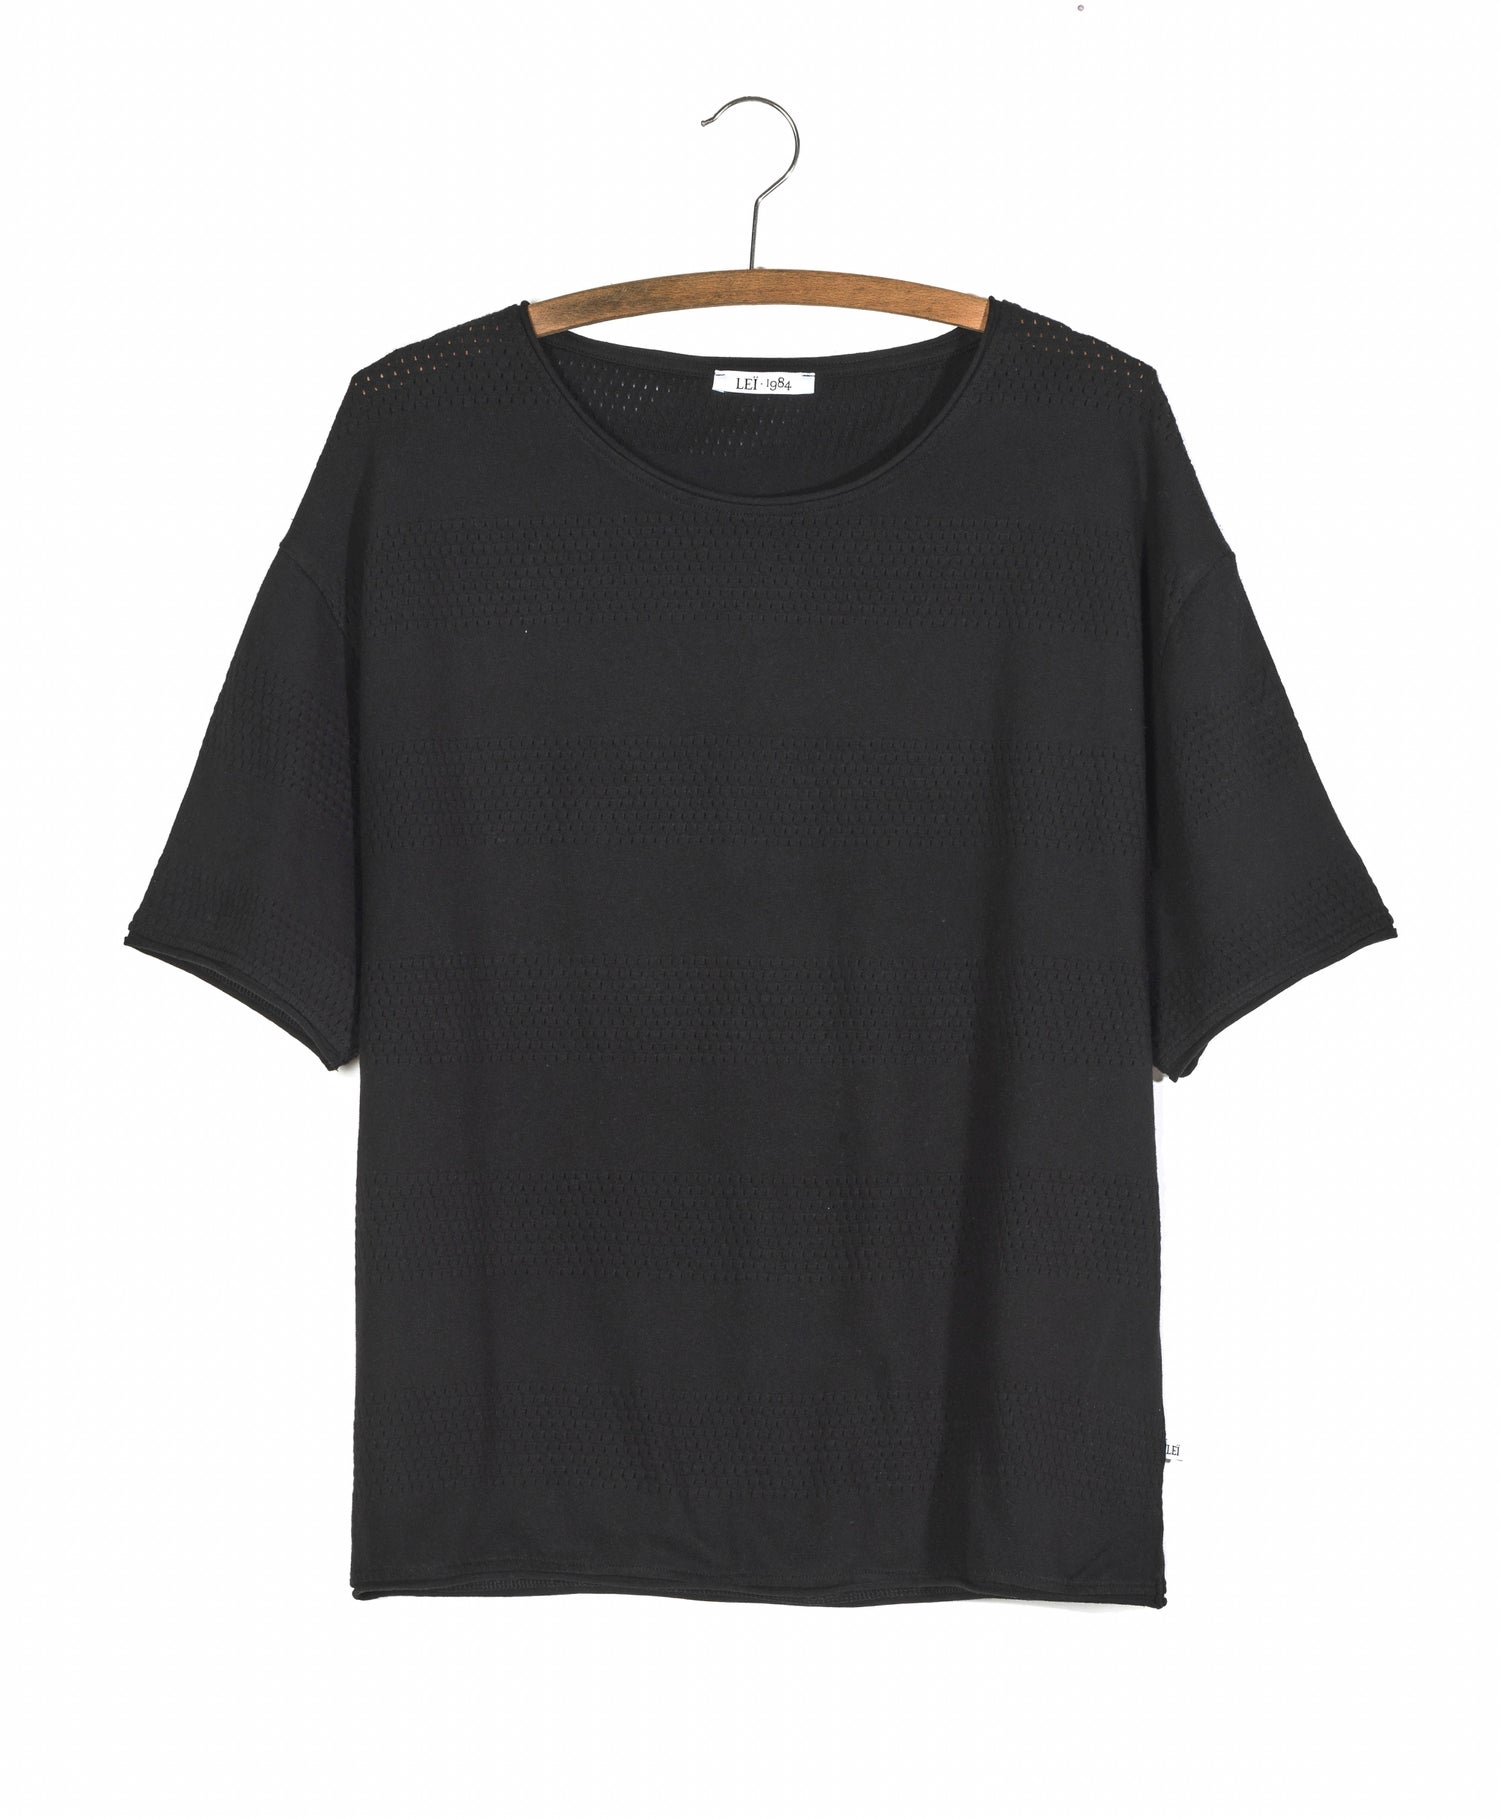 Image of Tee shirt ANTO rayures ajourées 59€ -30%